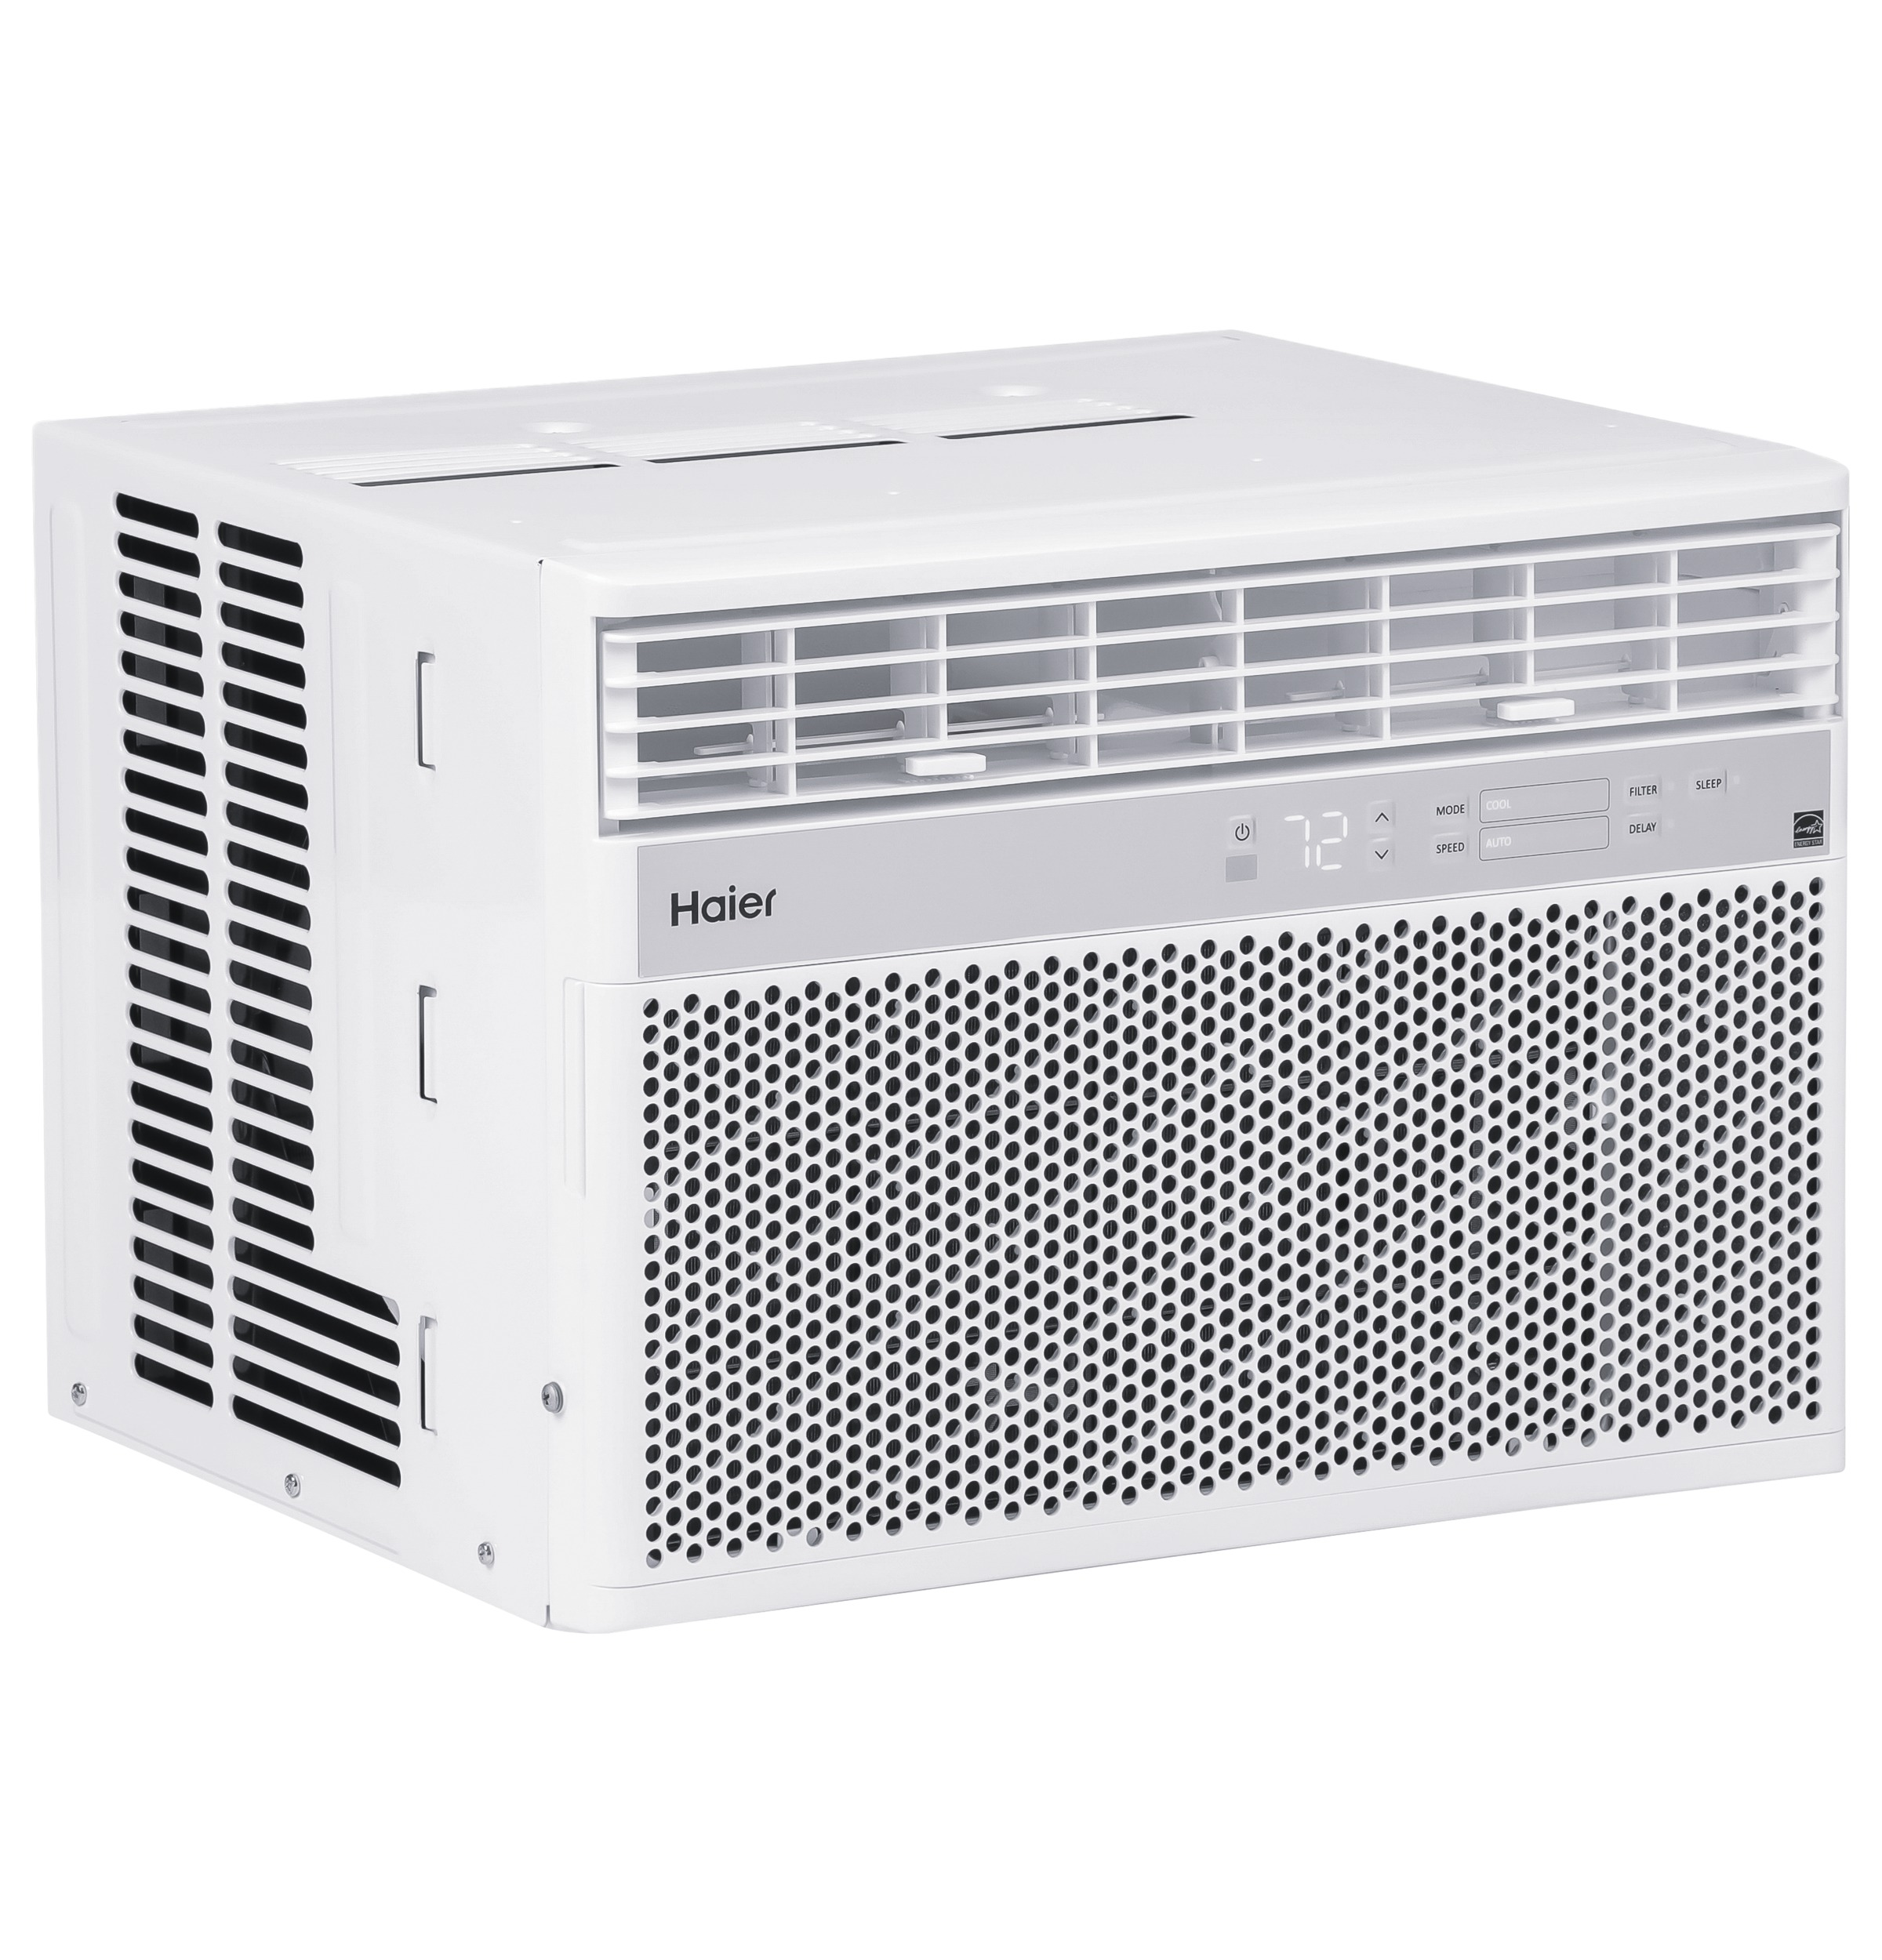 Model: QHM12AX | Haier ENERGY STAR® 115 Volt Electronic Room Air Conditioner